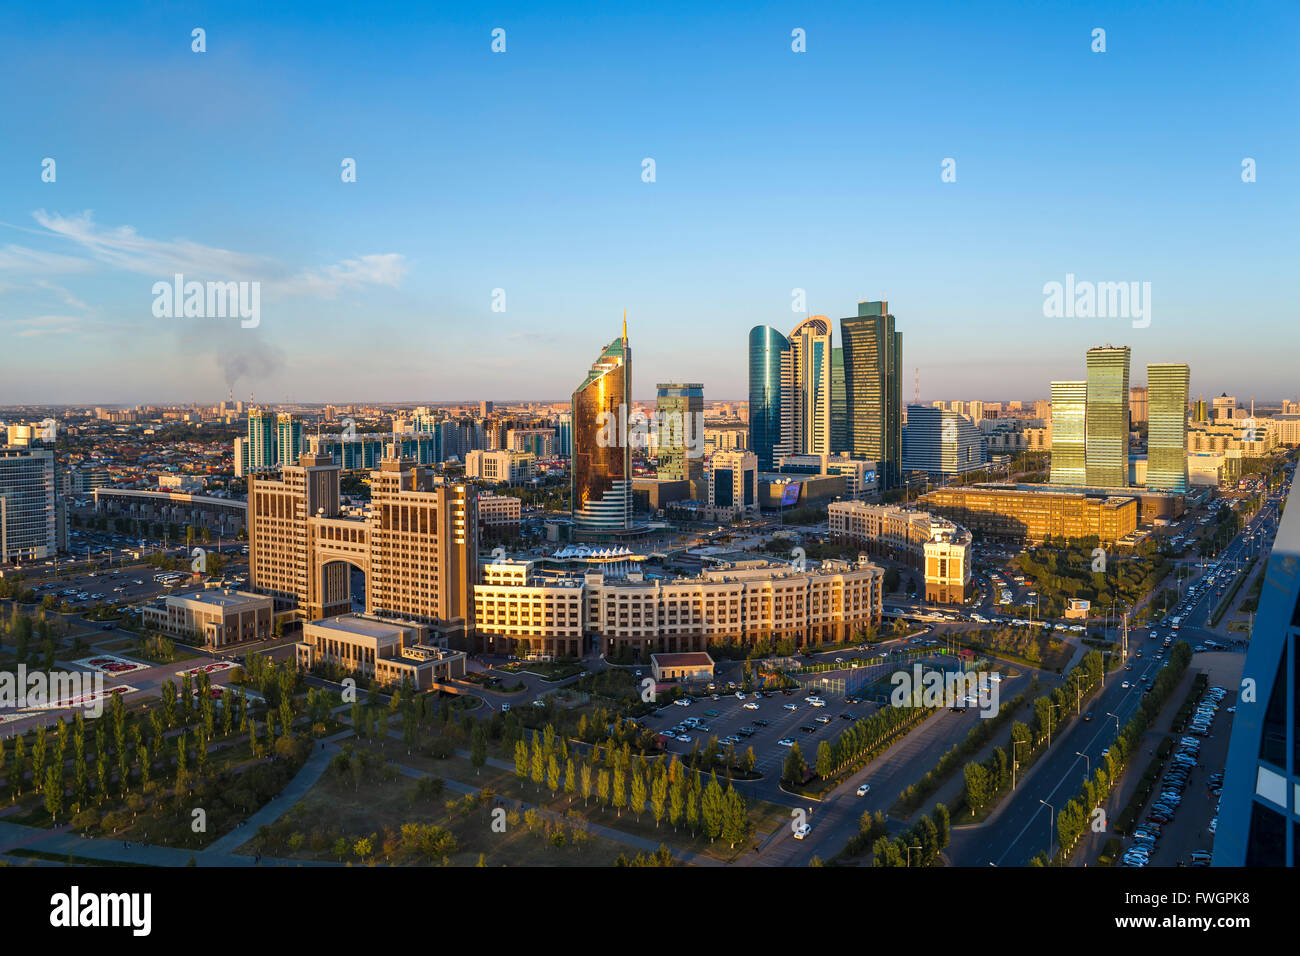 The city center and central business district, Astana, Kazakhstan, Central Asia - Stock Image